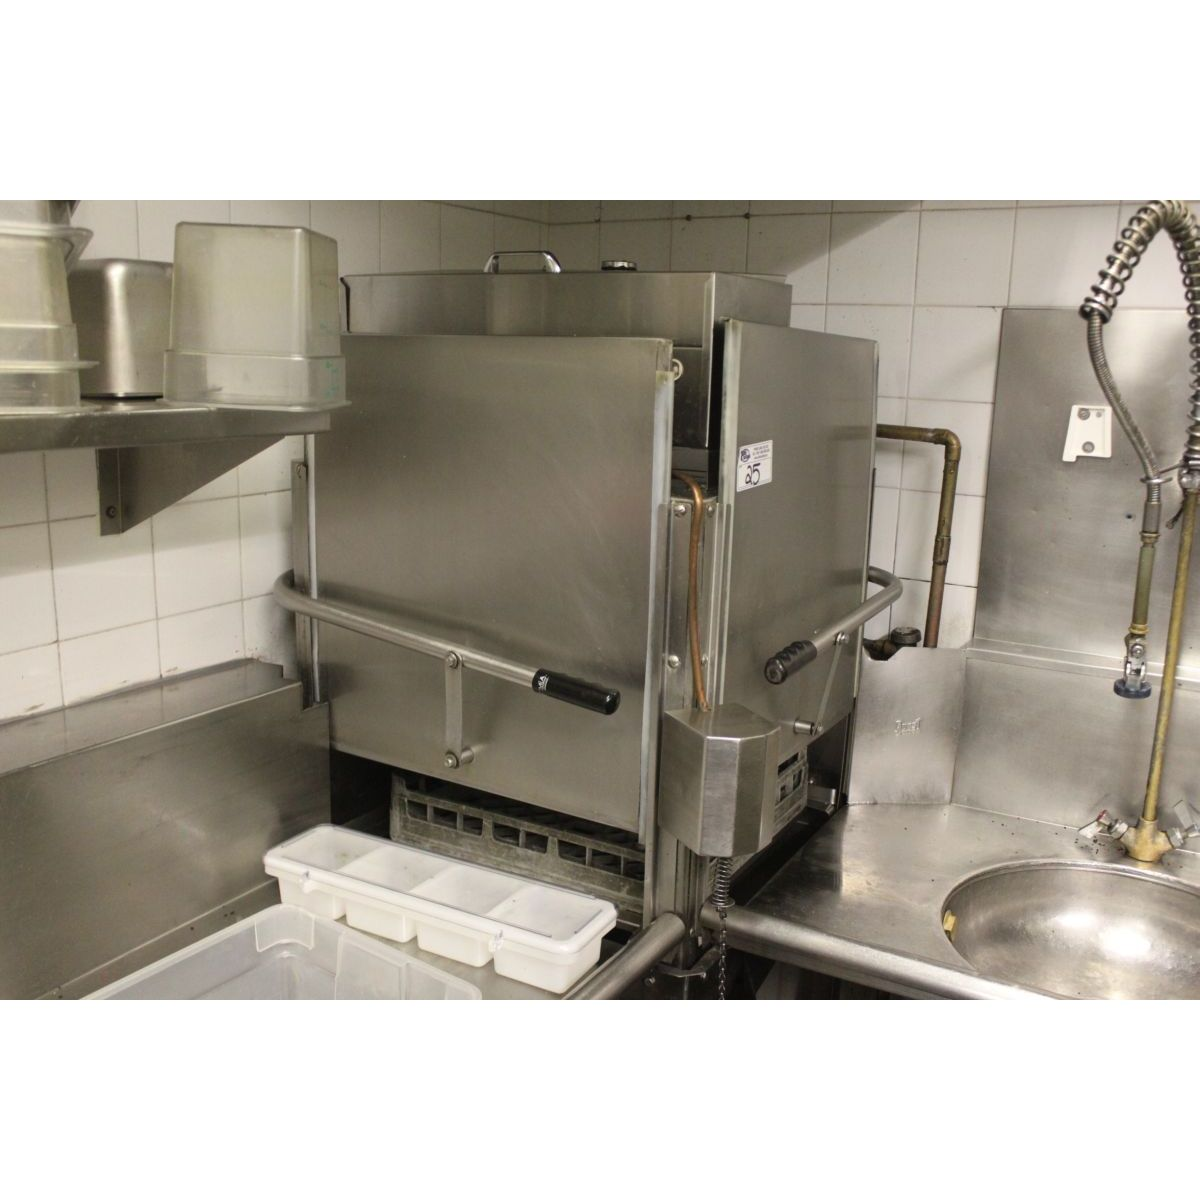 Commercial Dishwashing Layout Google Search: COMMERCIAL CORNER PASS THROUGH DISHWASHER